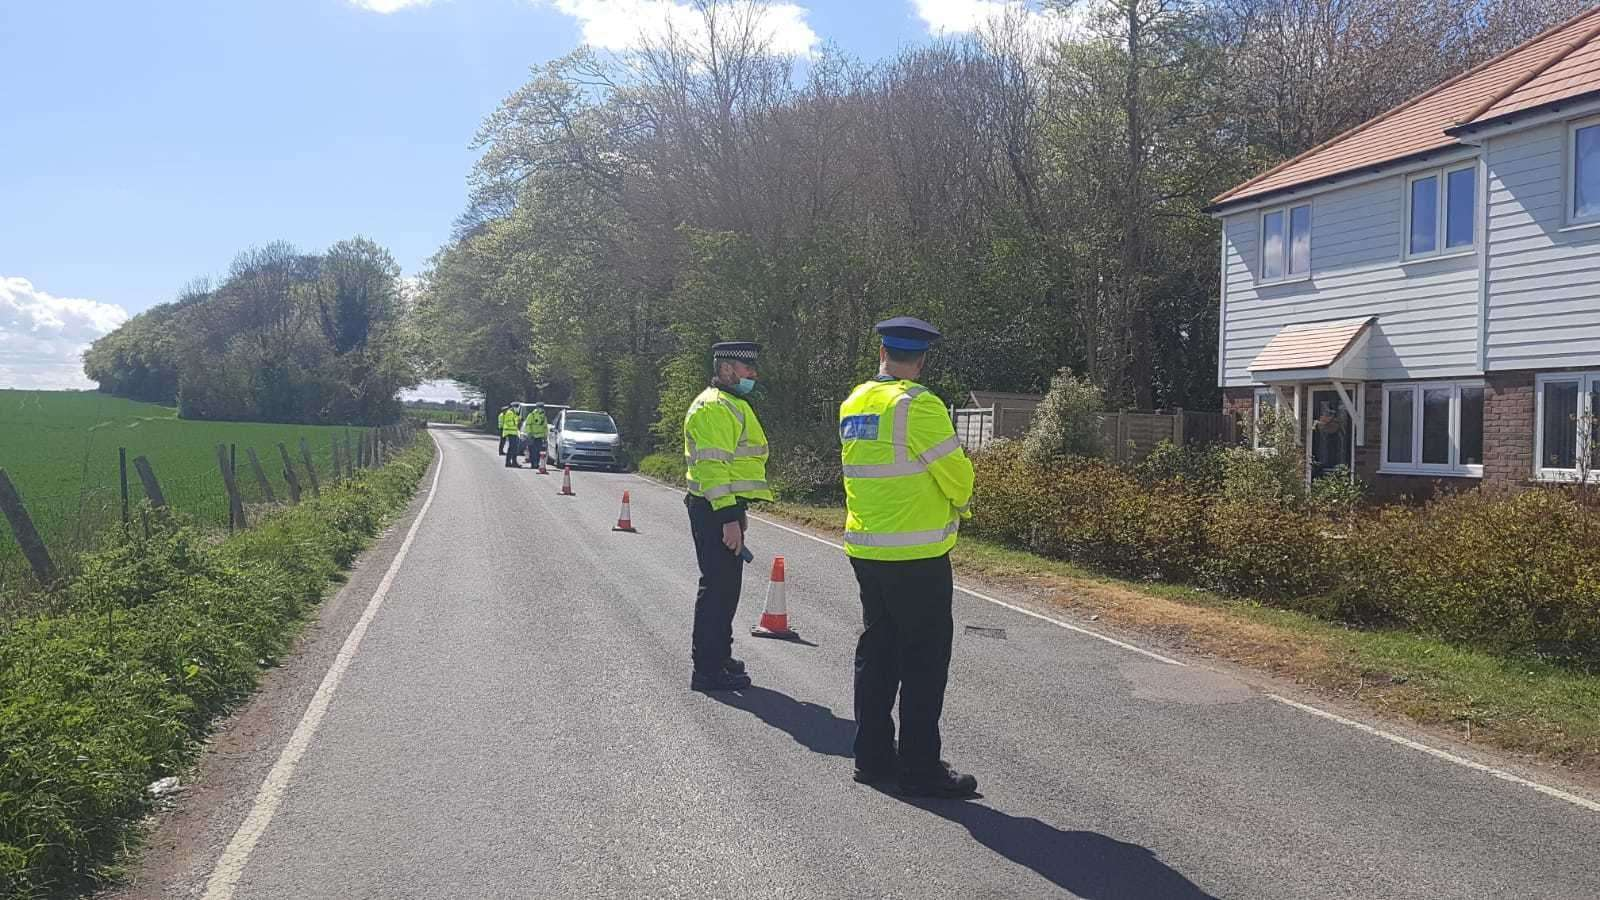 A road block has been put in place in Snowdown as part of the murder investigation into Julia James' death